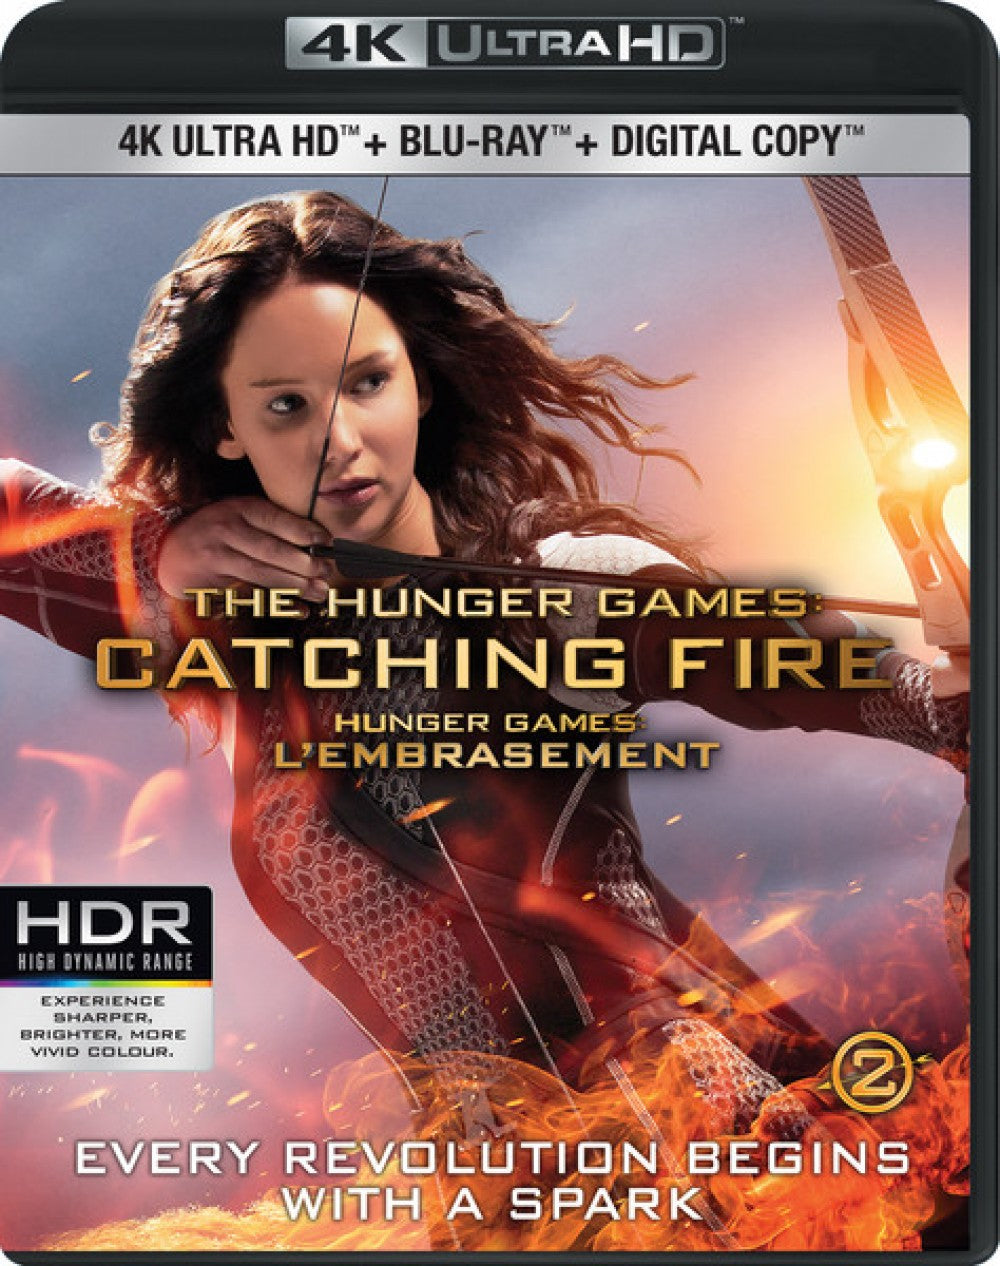 The Hunger Games: Catching Fire 4k